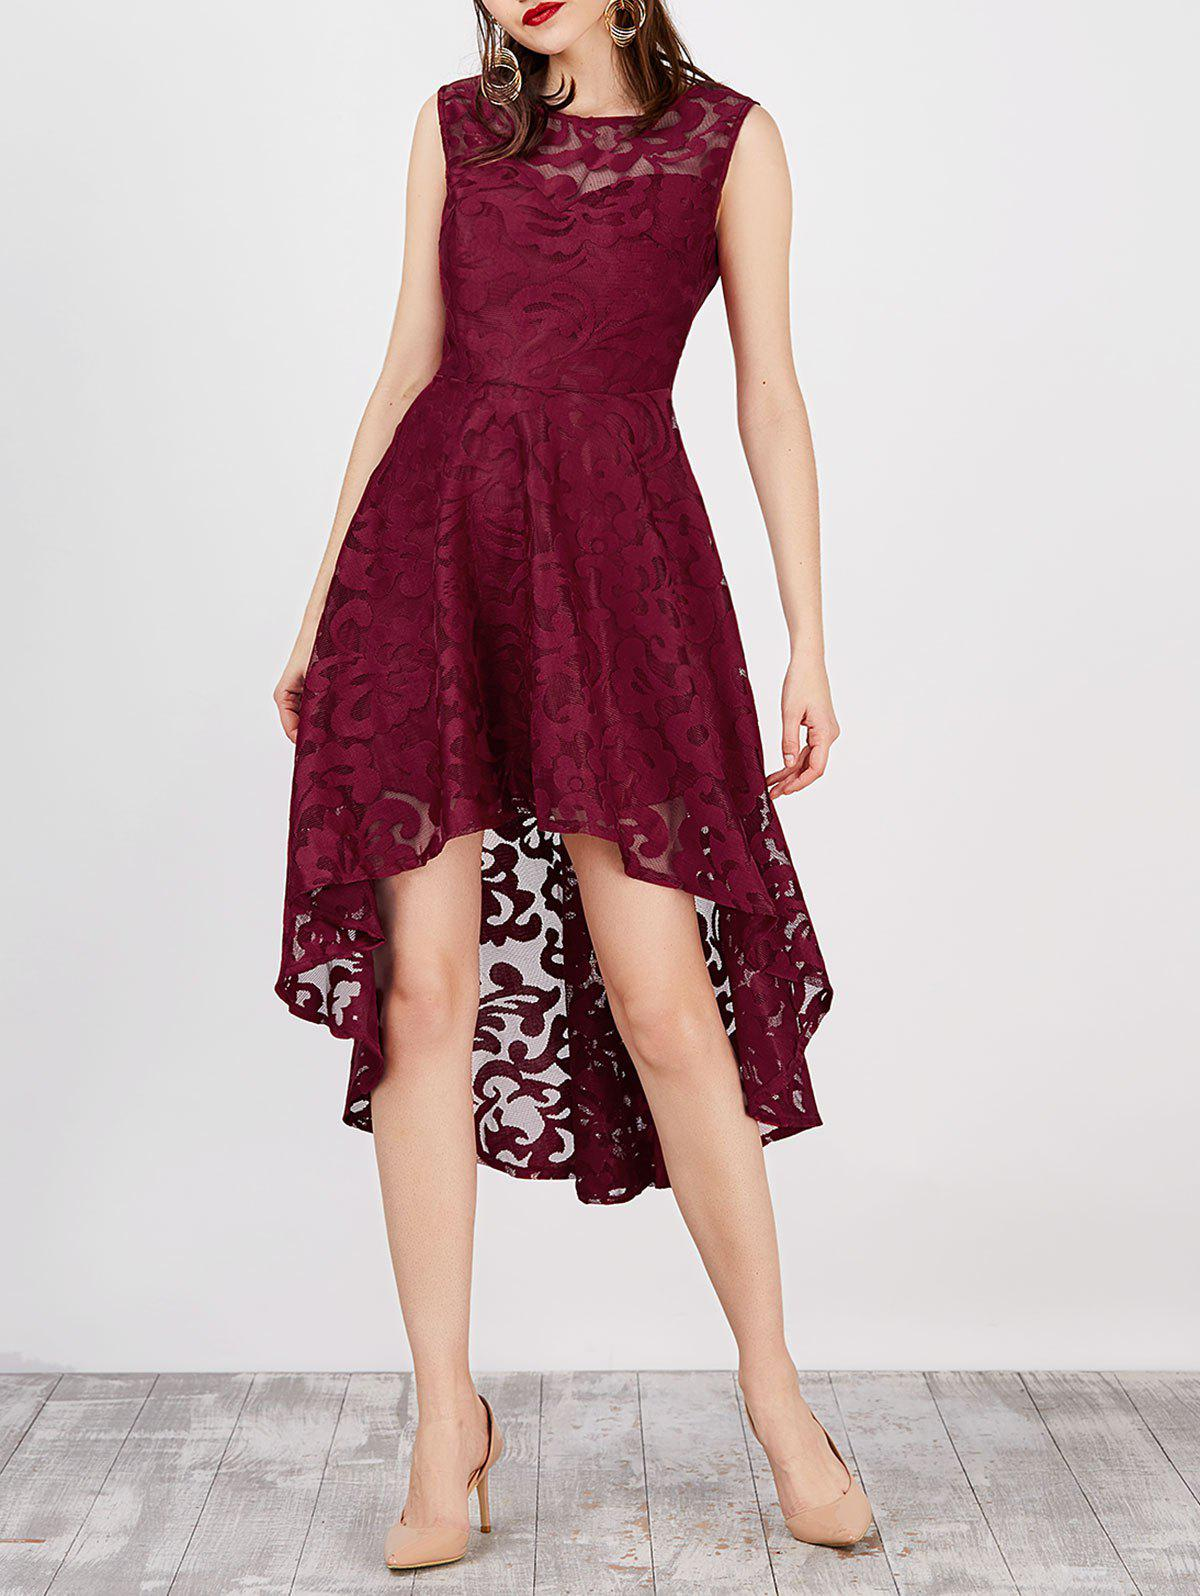 Lace High Low Swing Evening Party Dress lace high low swing evening party dress